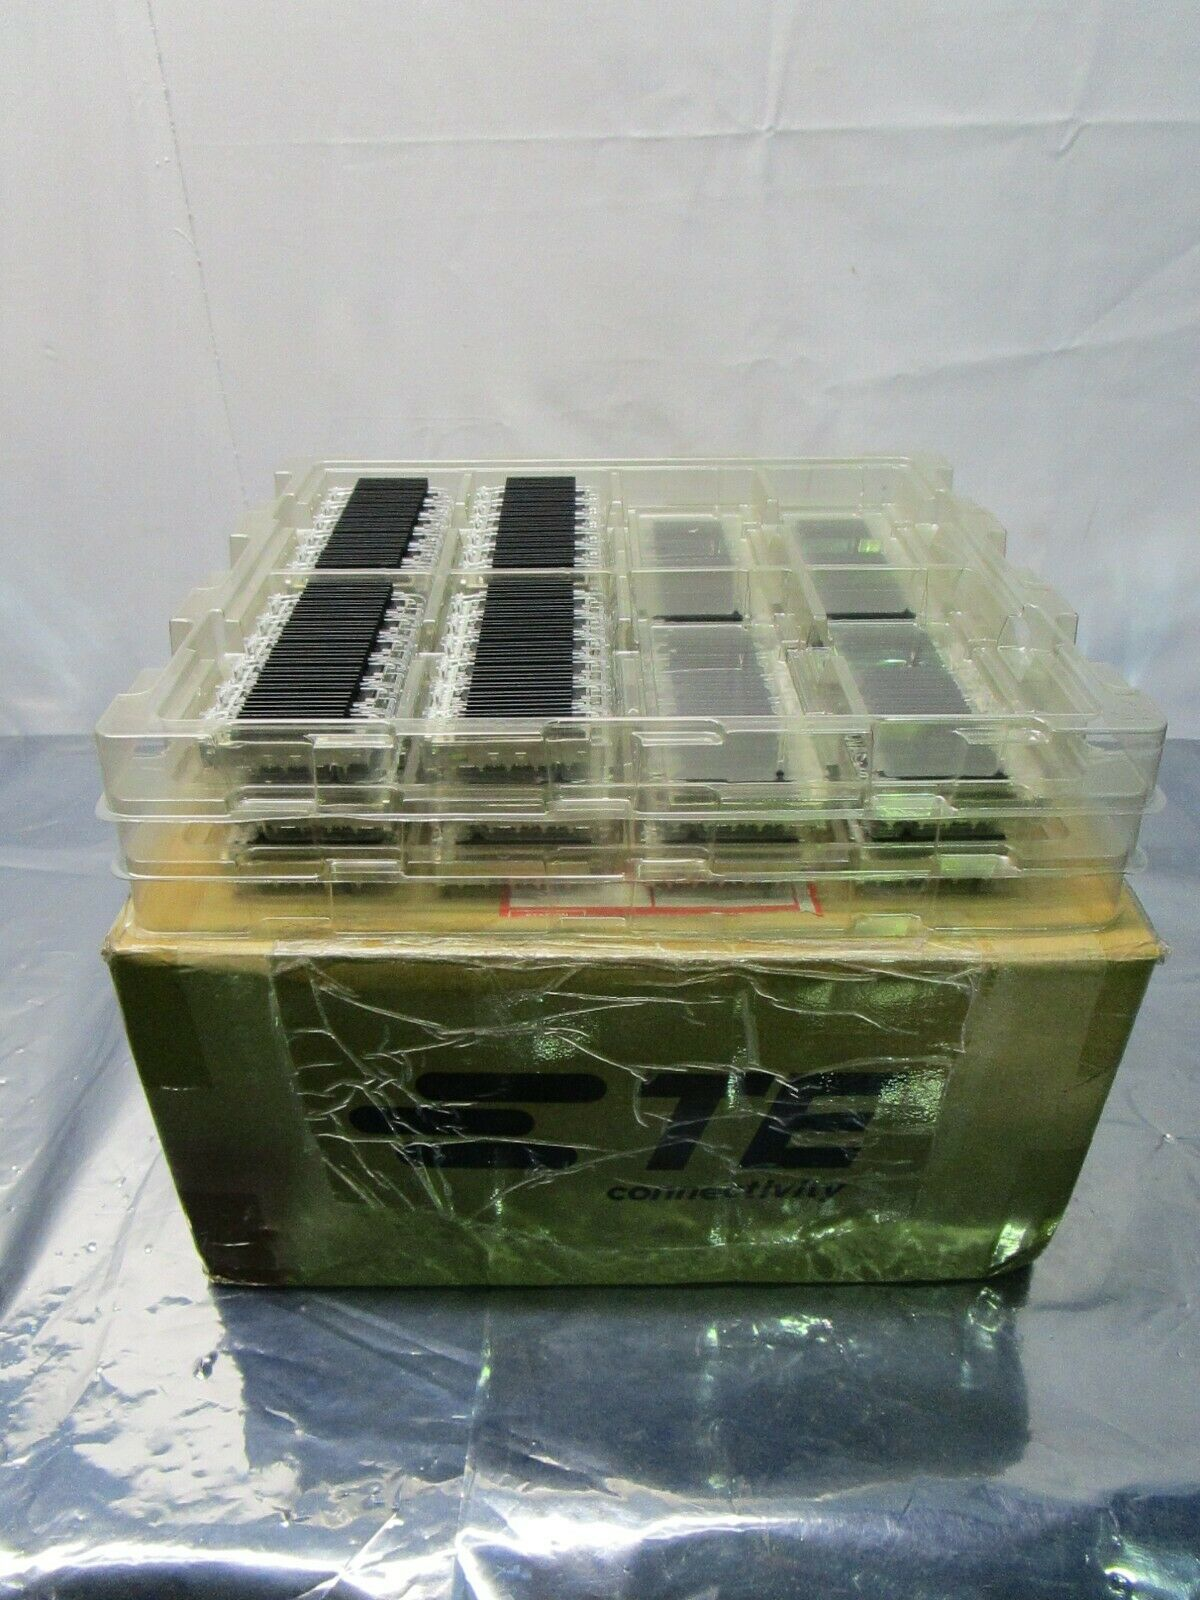 1 Lot of 20 TE connectivity AMP Brand 2170551-1 1X6 CAGE ASSEMBLY, 102548